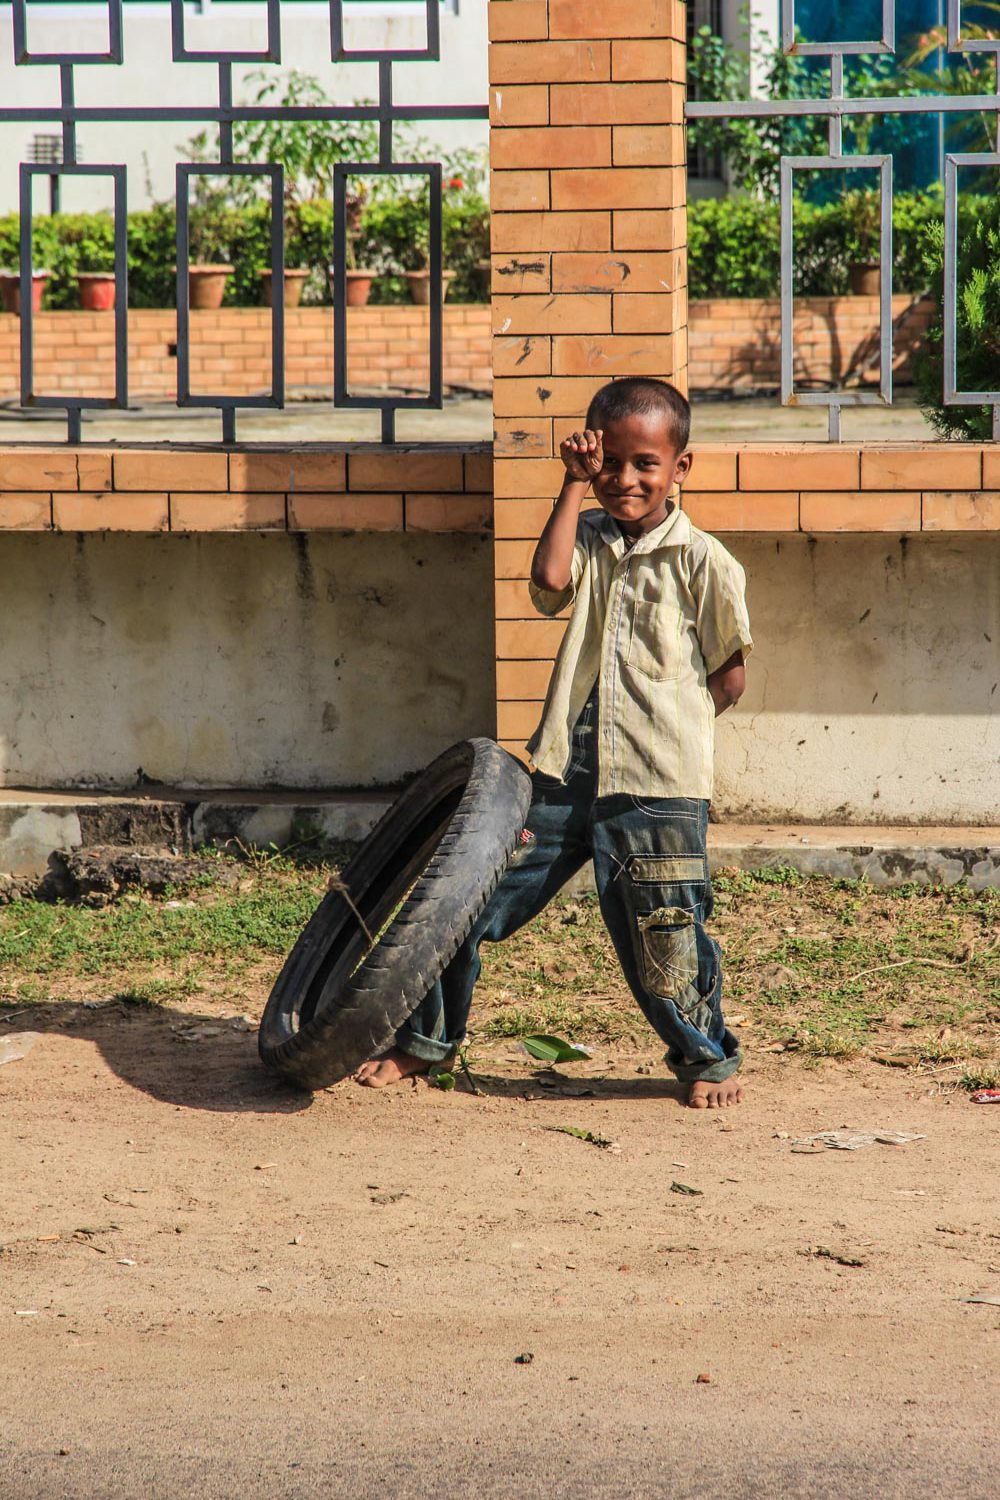 A local kid posing for photo, he wanted to give me the wheel as a gift, i could´t accept